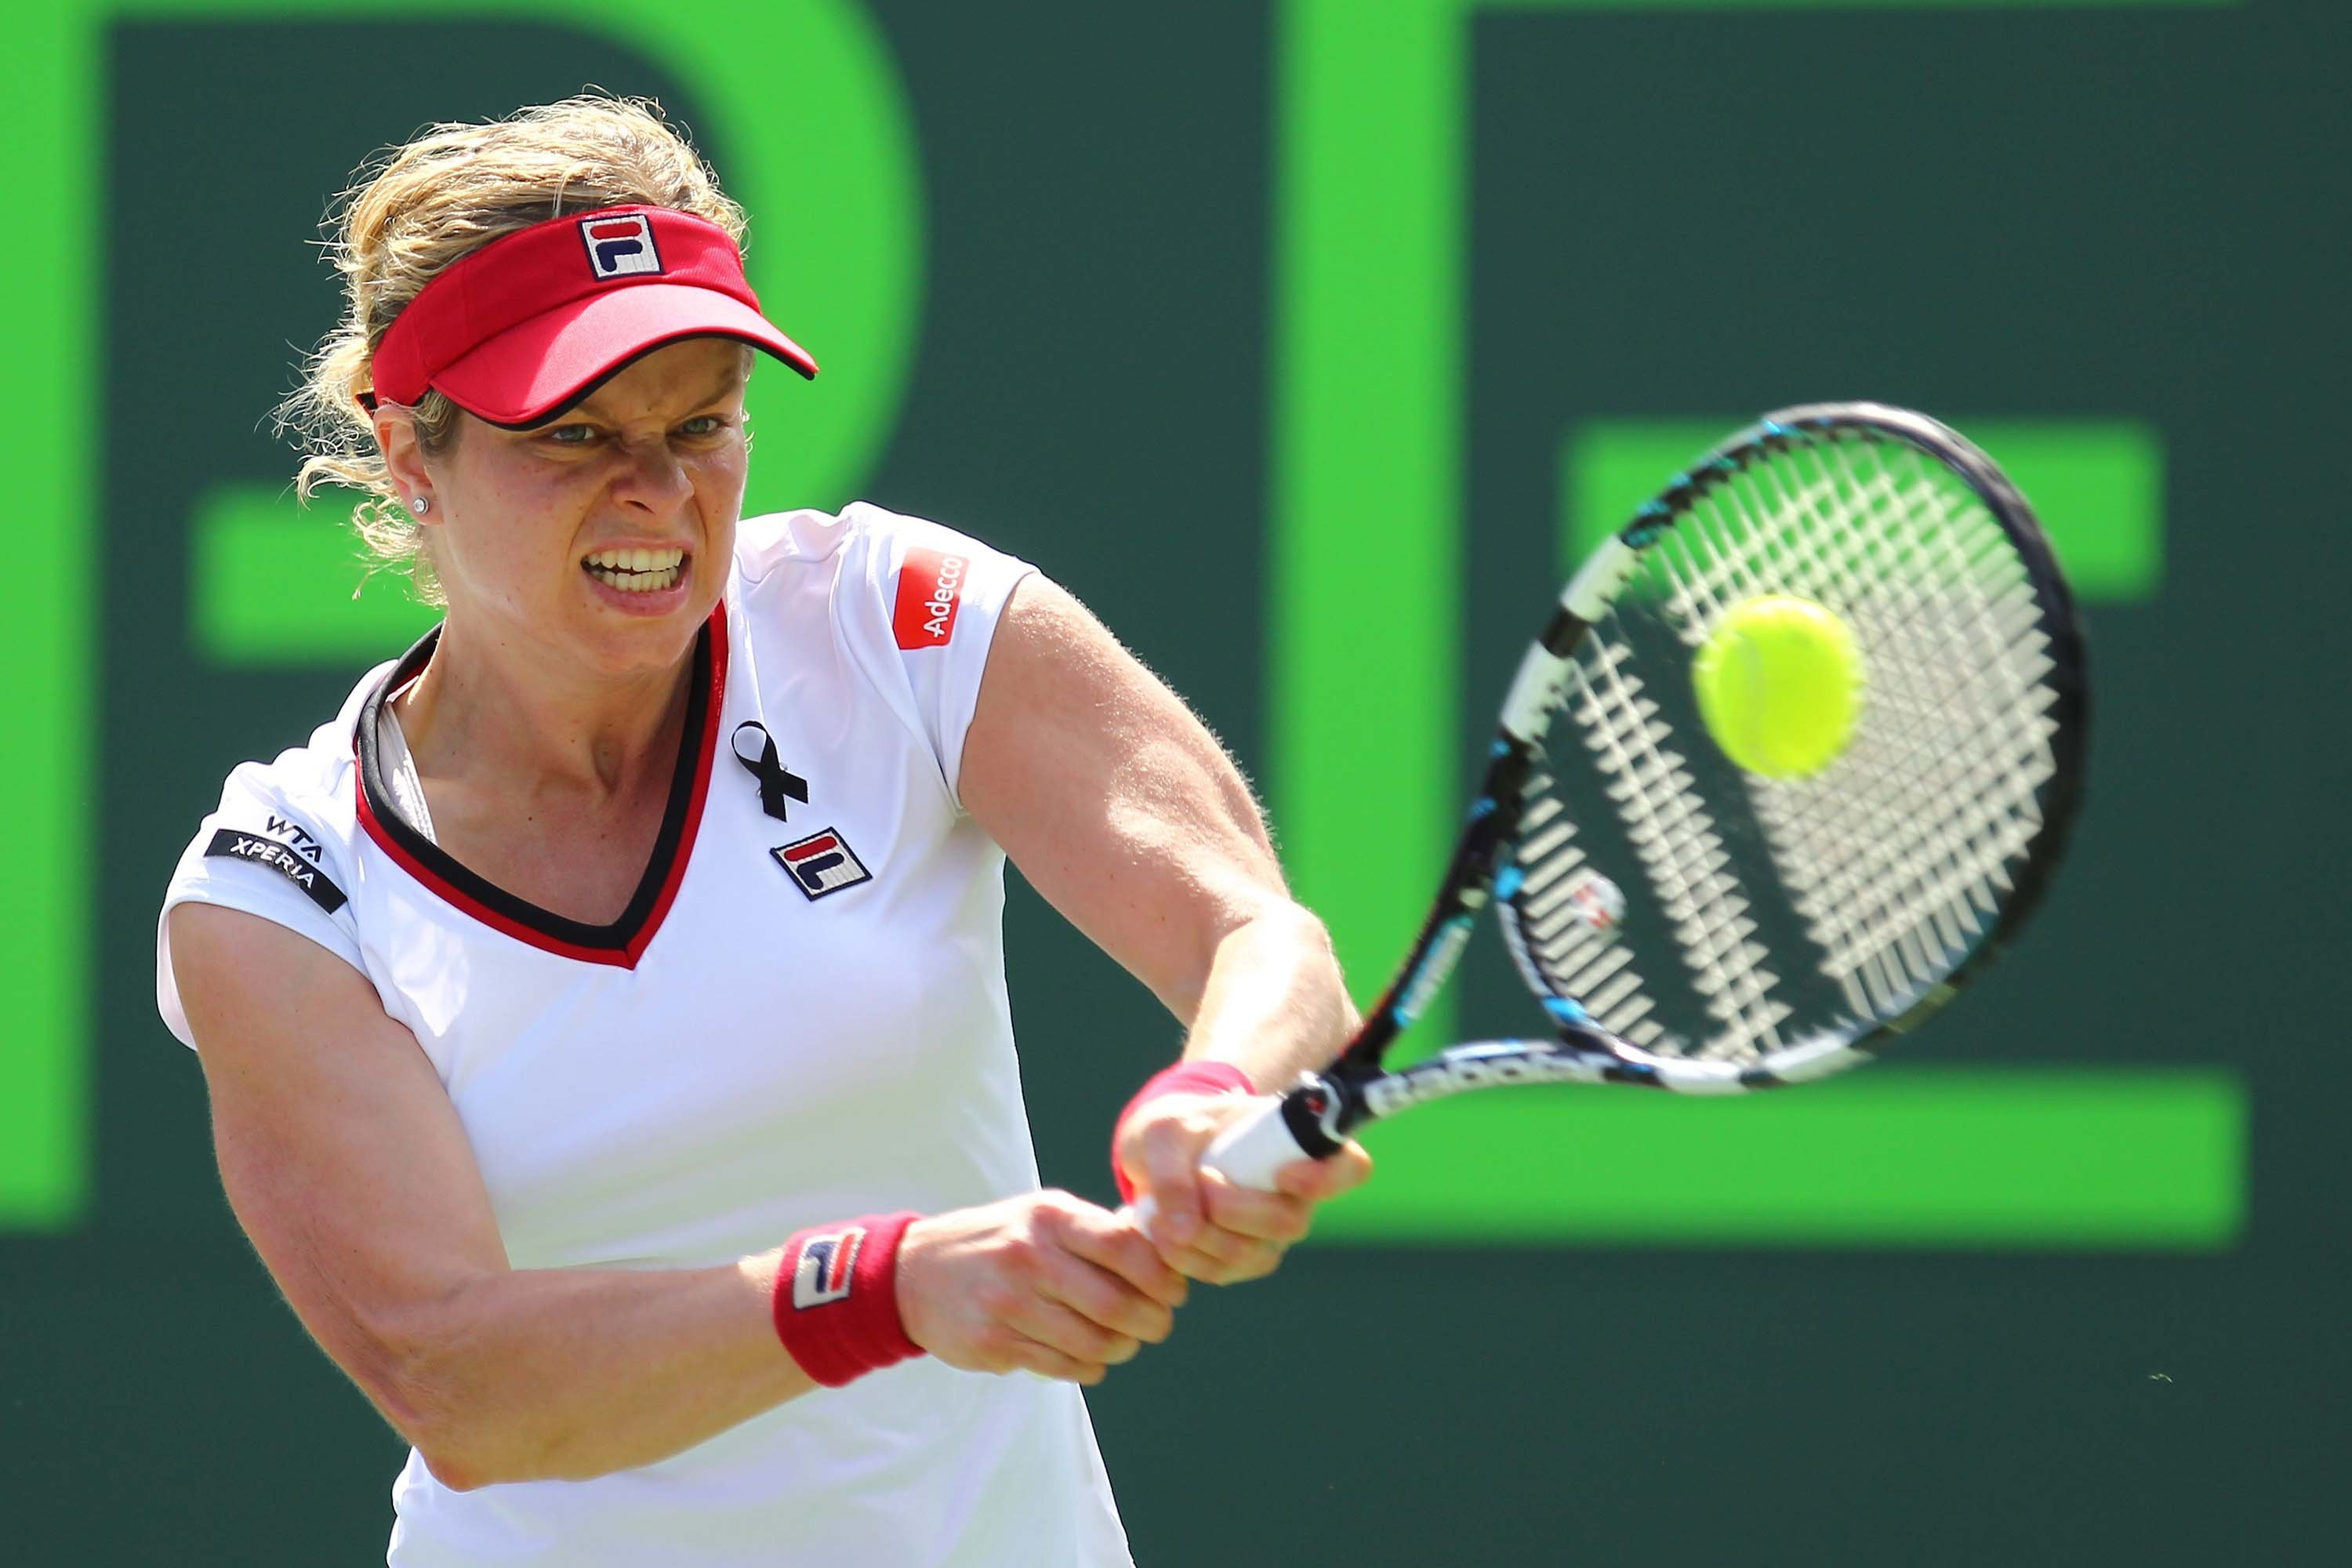 Kim Clijsters to come out of retirement, announces return to tennis at 36